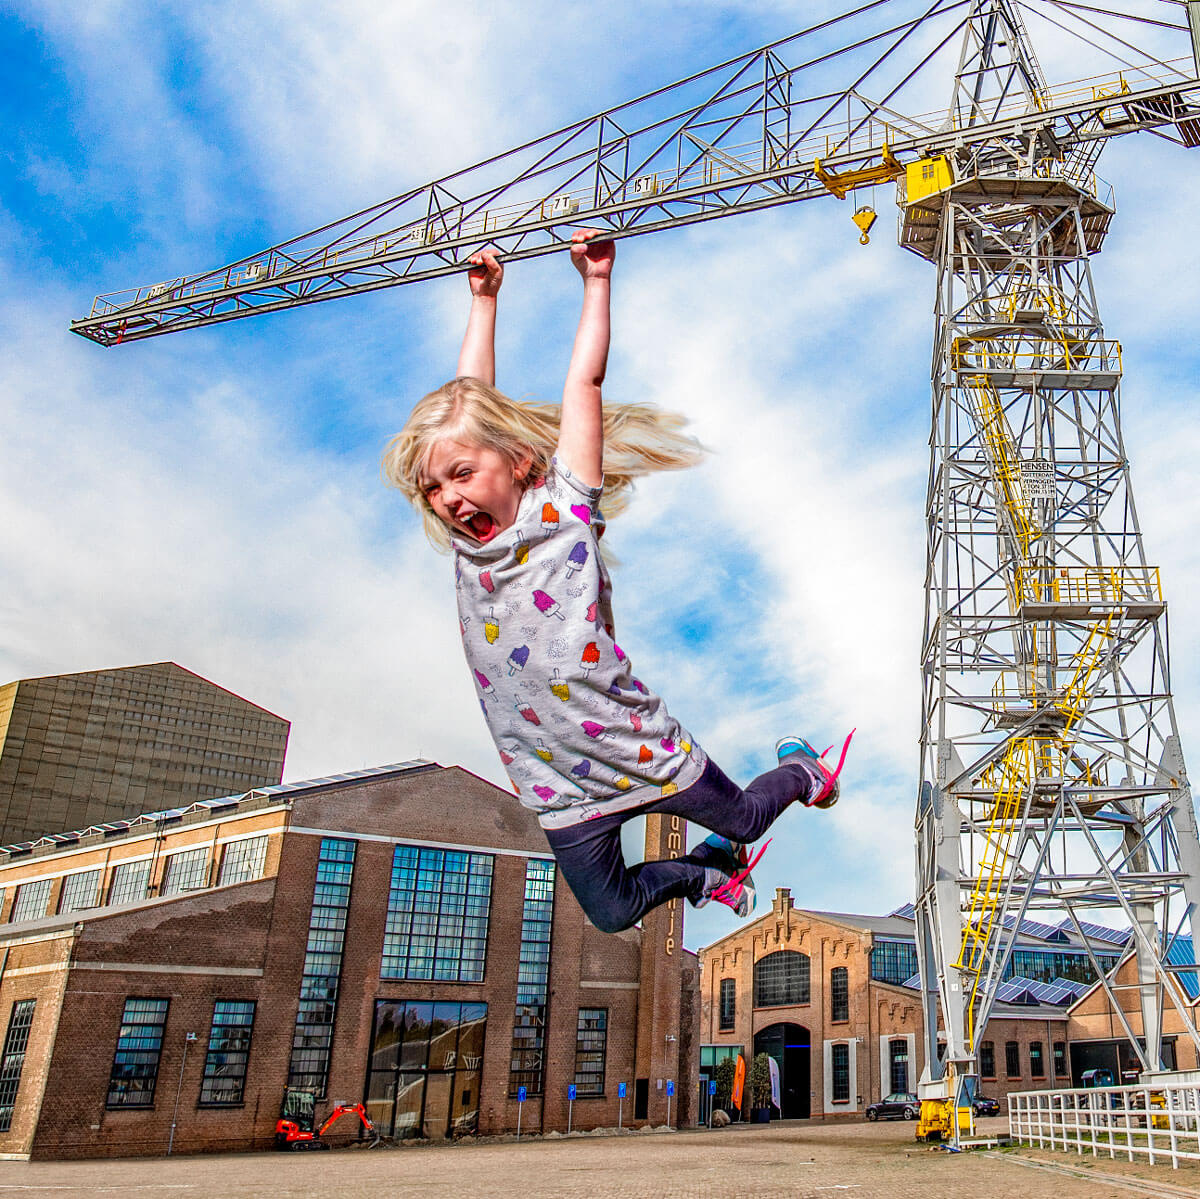 Big Girl Trapeze - Photoshop - Photomanipulation - Willemsoord Den Helder